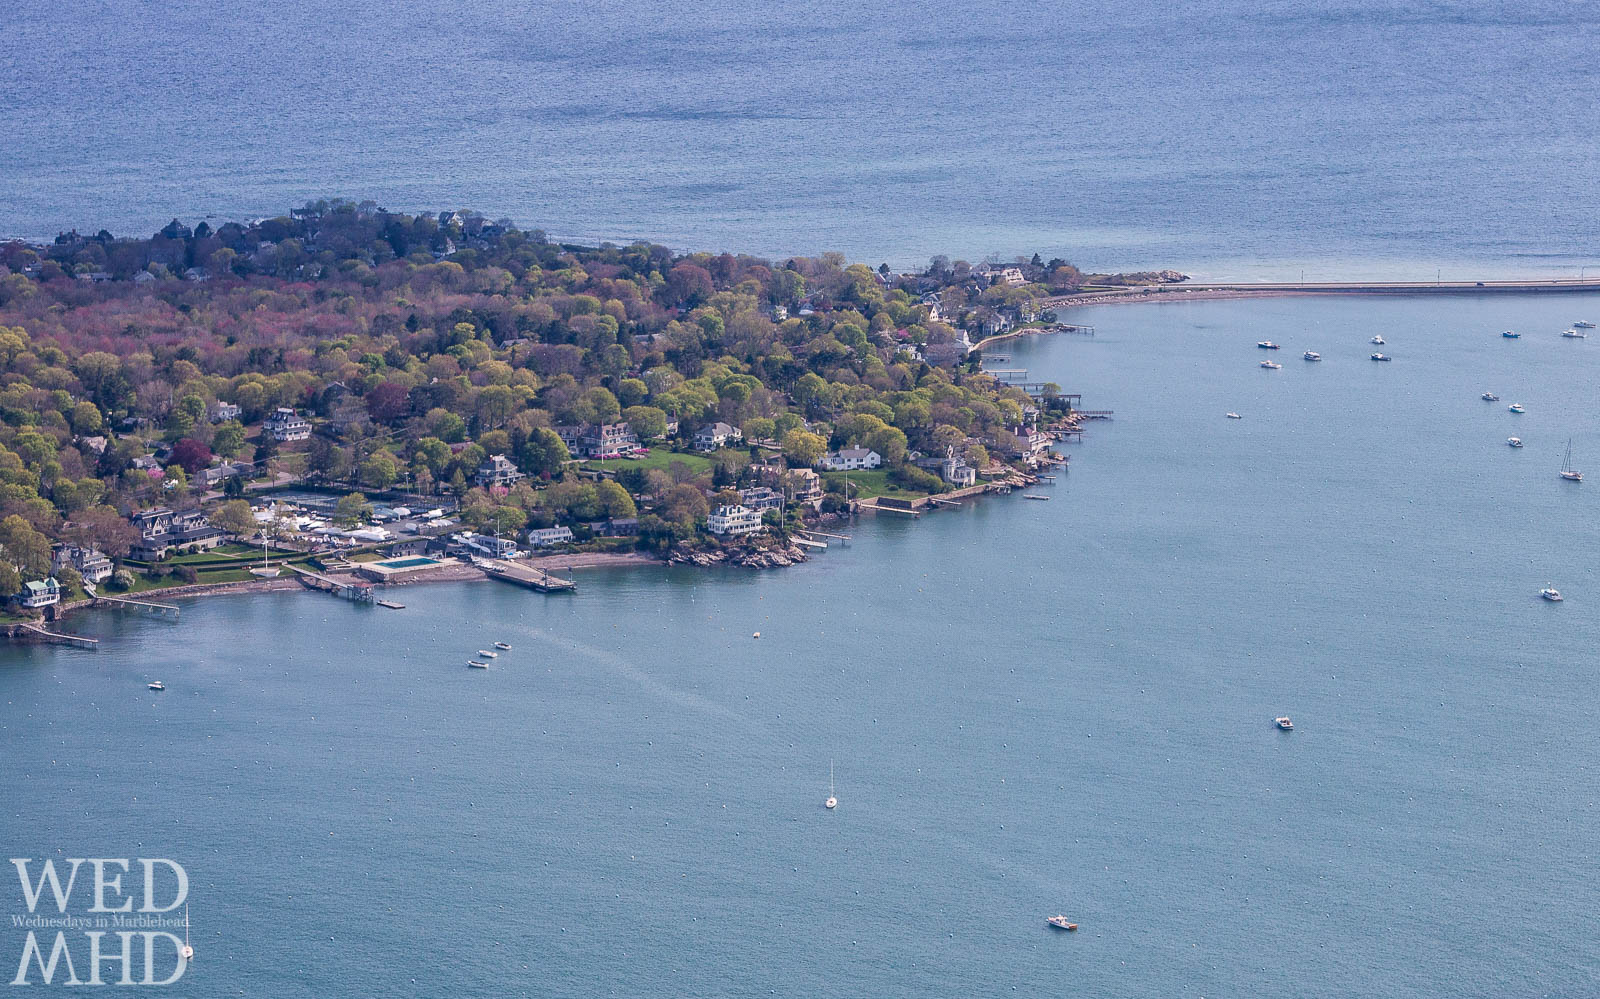 Marblehead Neck and the Causeway are seen from overhead on an early Spring day